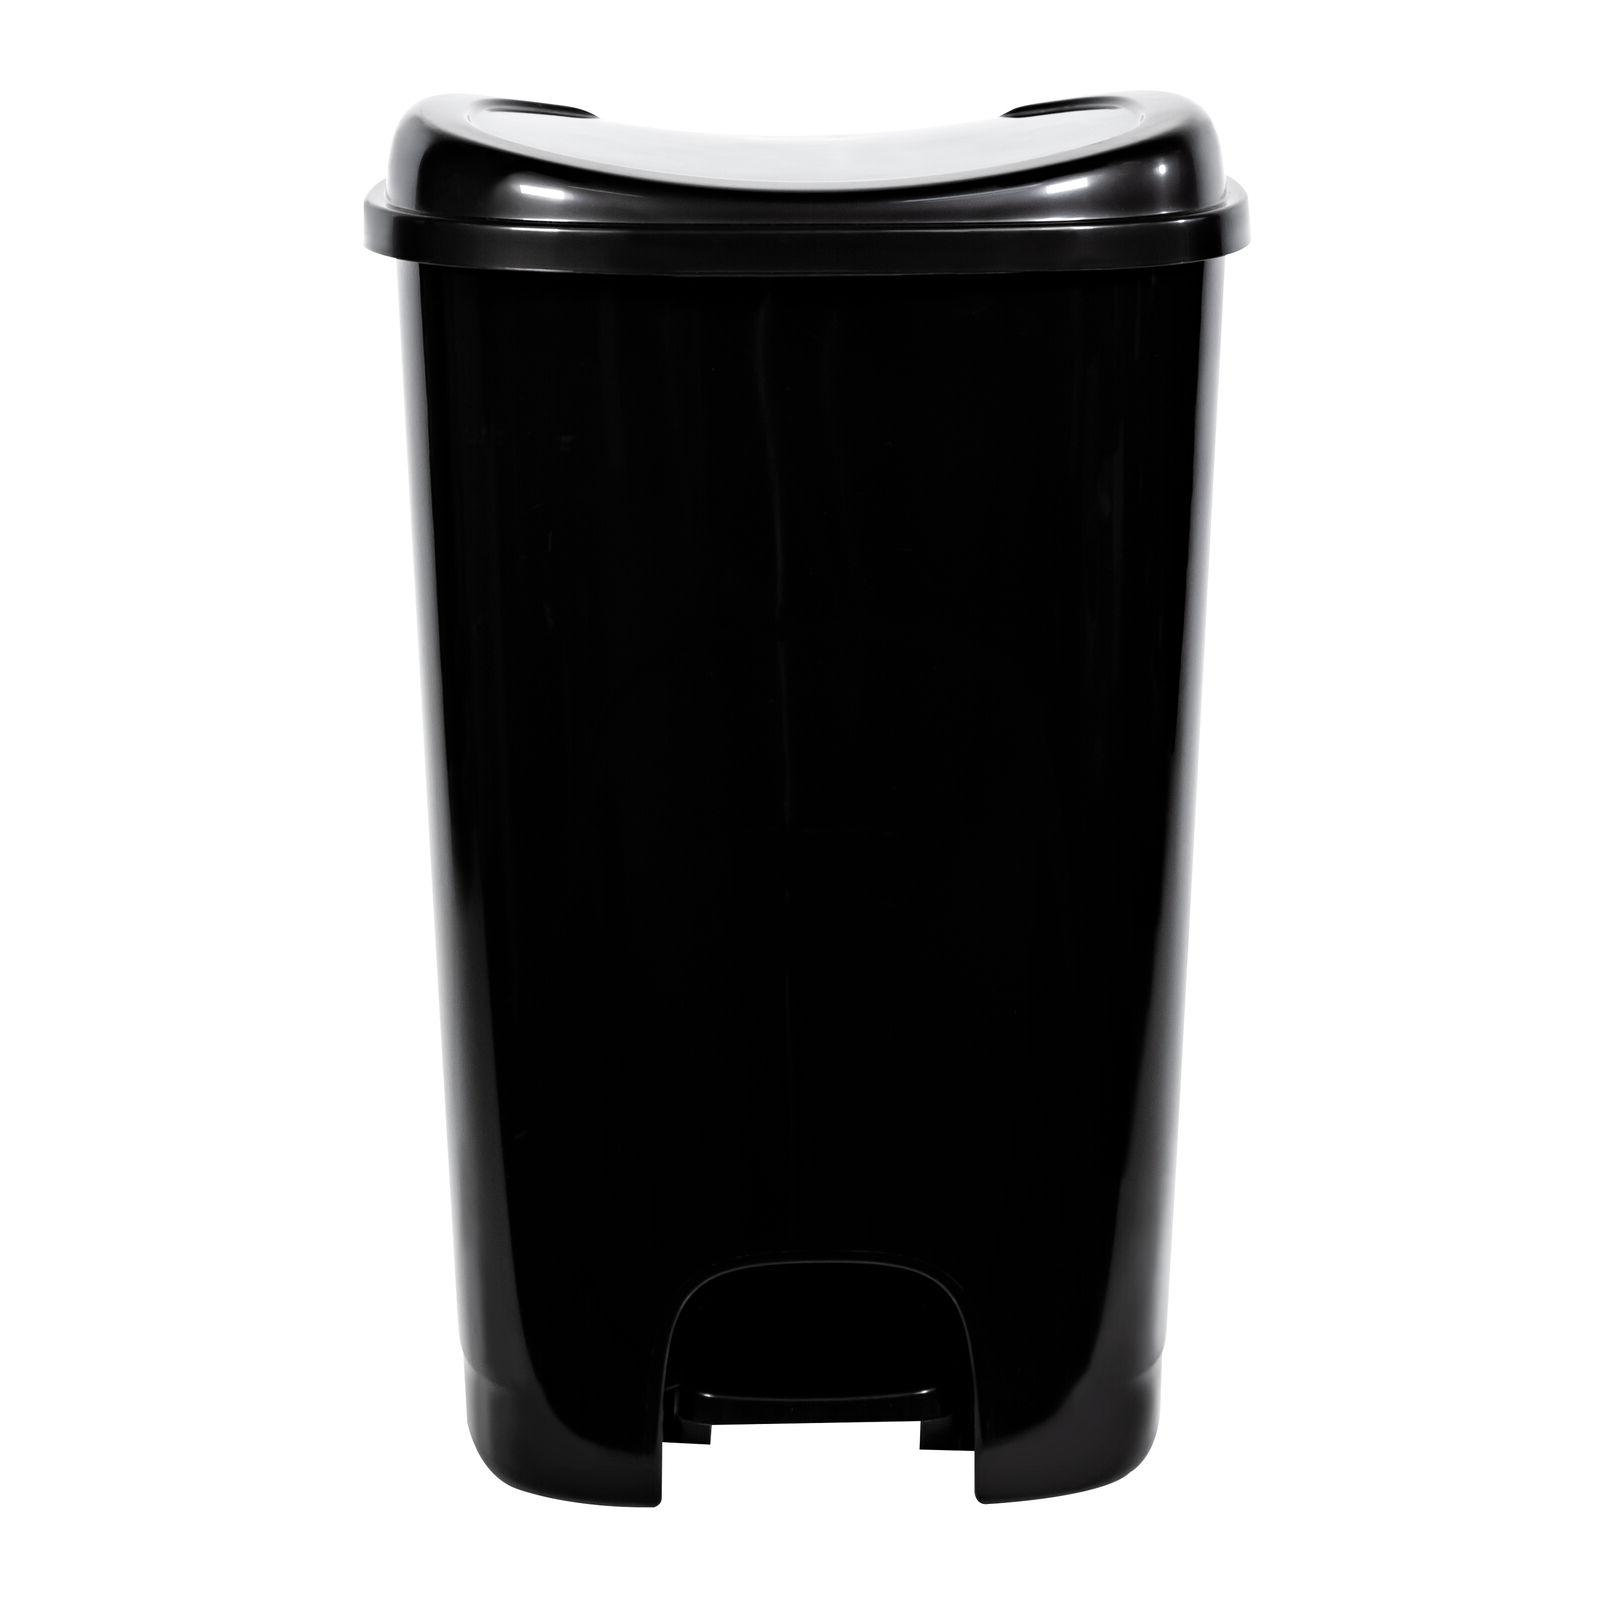 Black Trash Can On Foot Pedal Kitchen